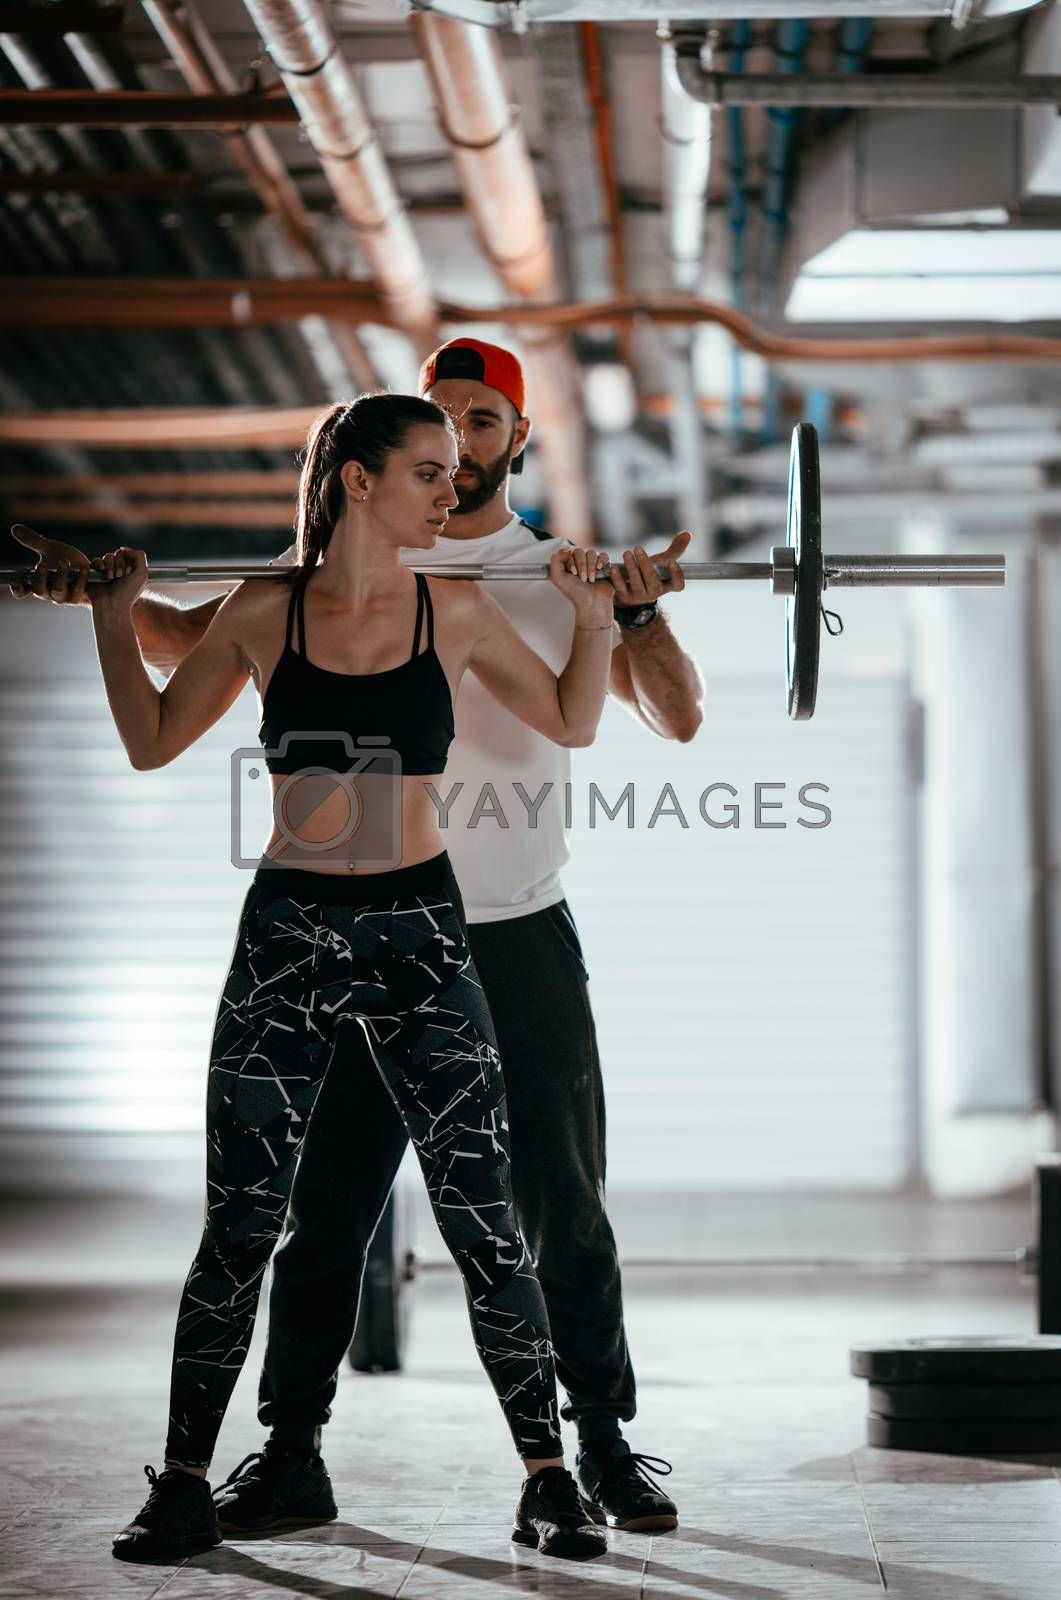 Young muscular woman doing cross workout with a personal trainer at the garage gym.